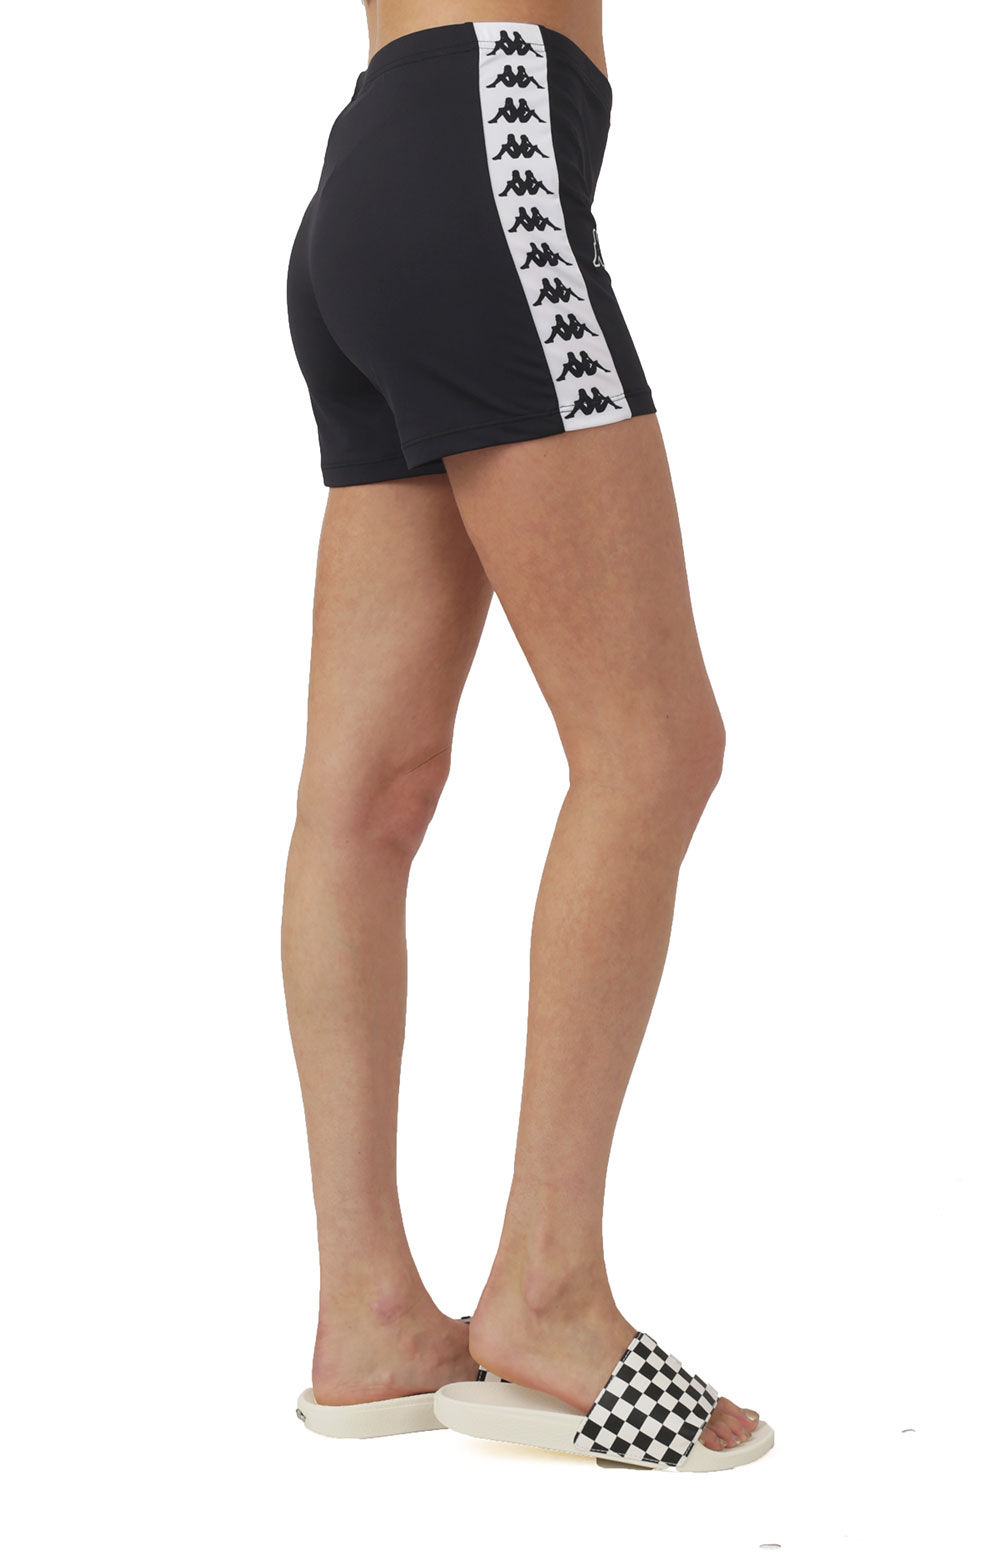 222 Banda Atry Shorts - Black/White